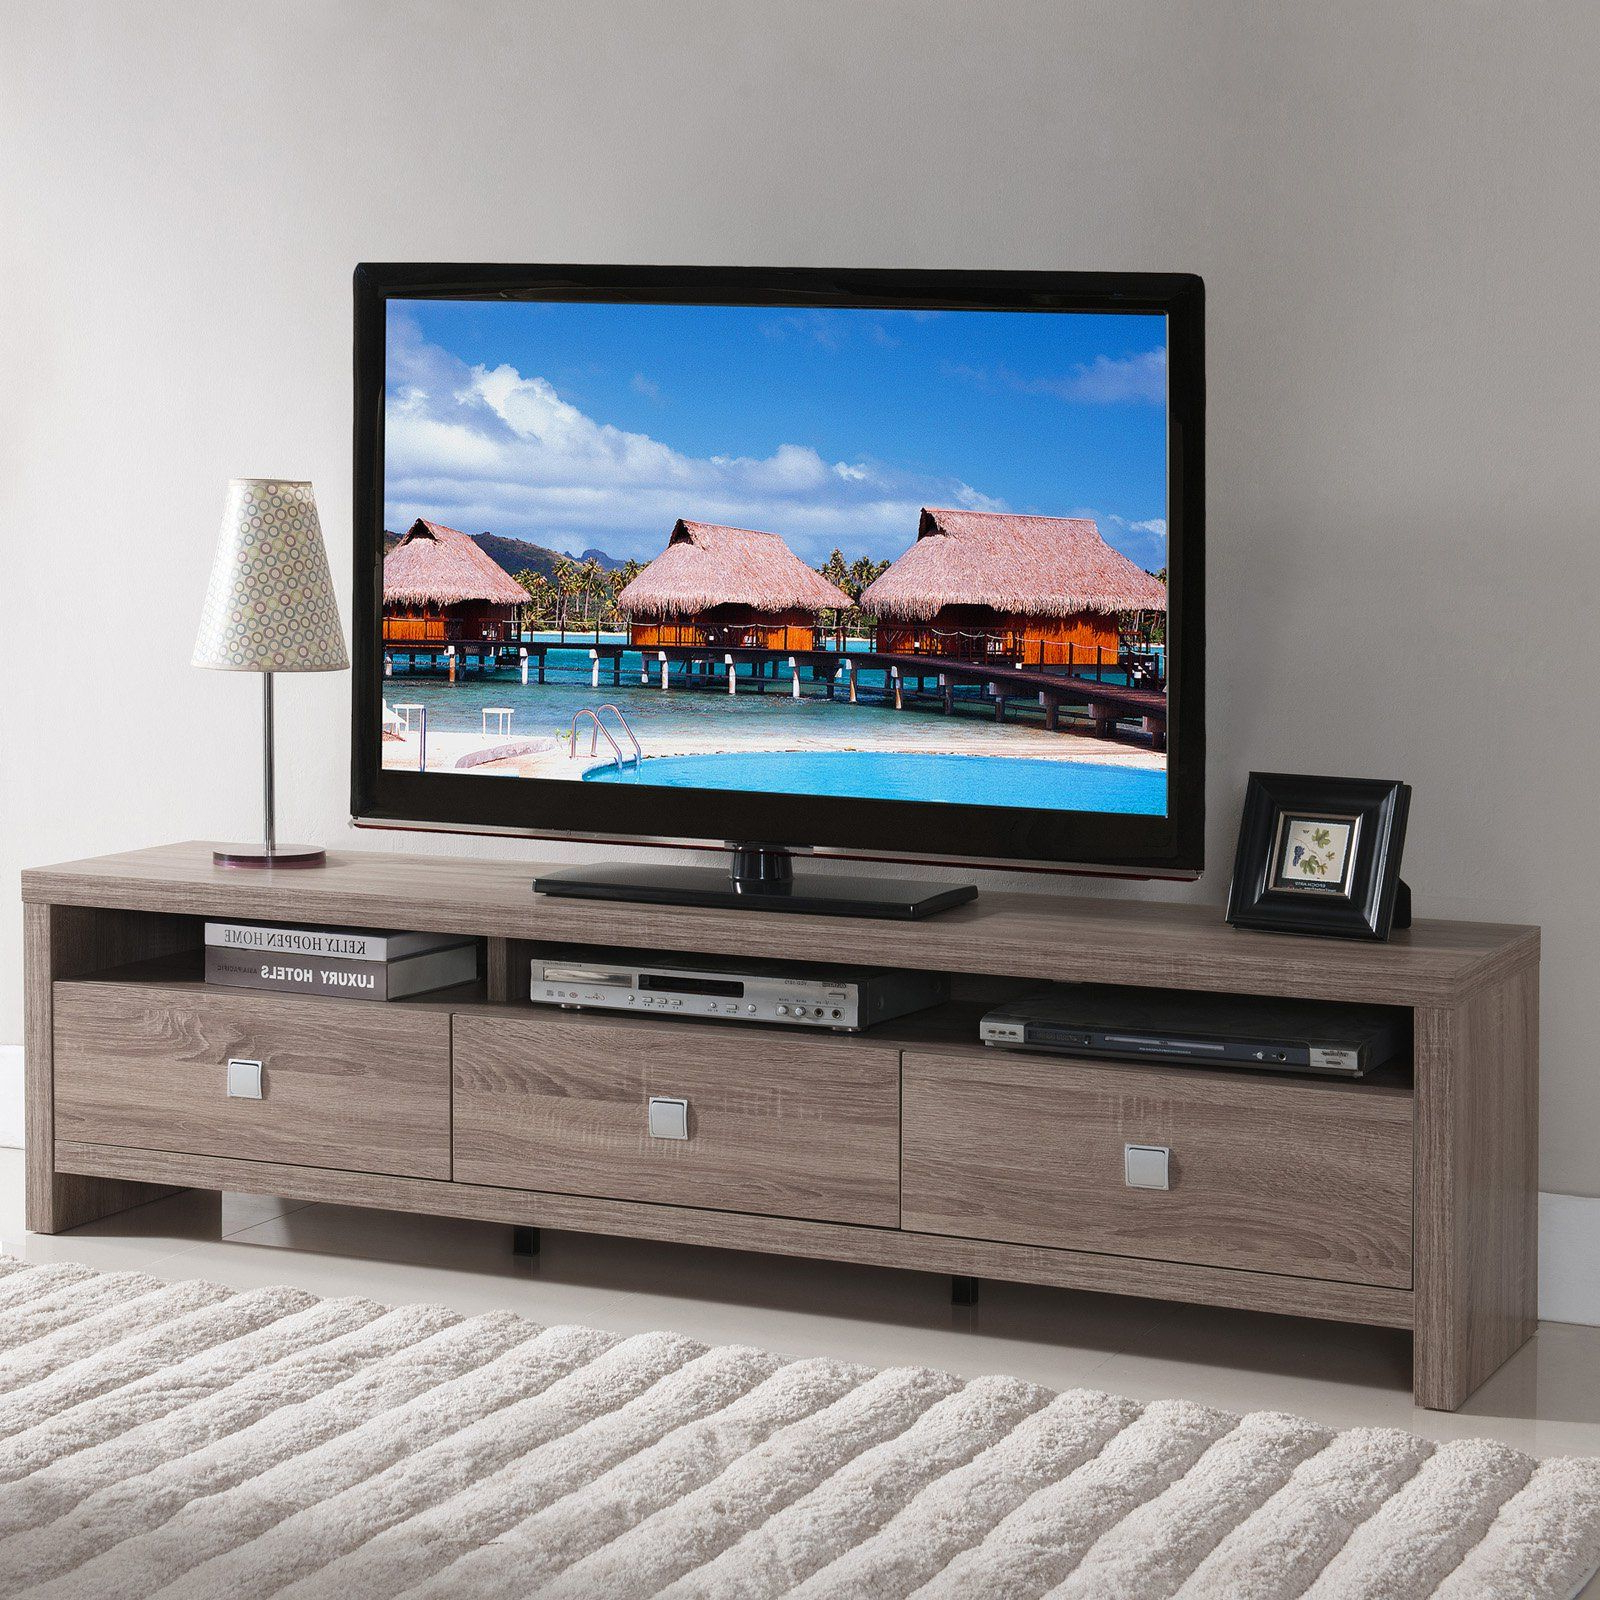 Furniture Of America Contemporary Tv Stand | From Hayneedle Inside Kenzie 72 Inch Open Display Tv Stands (Gallery 15 of 20)